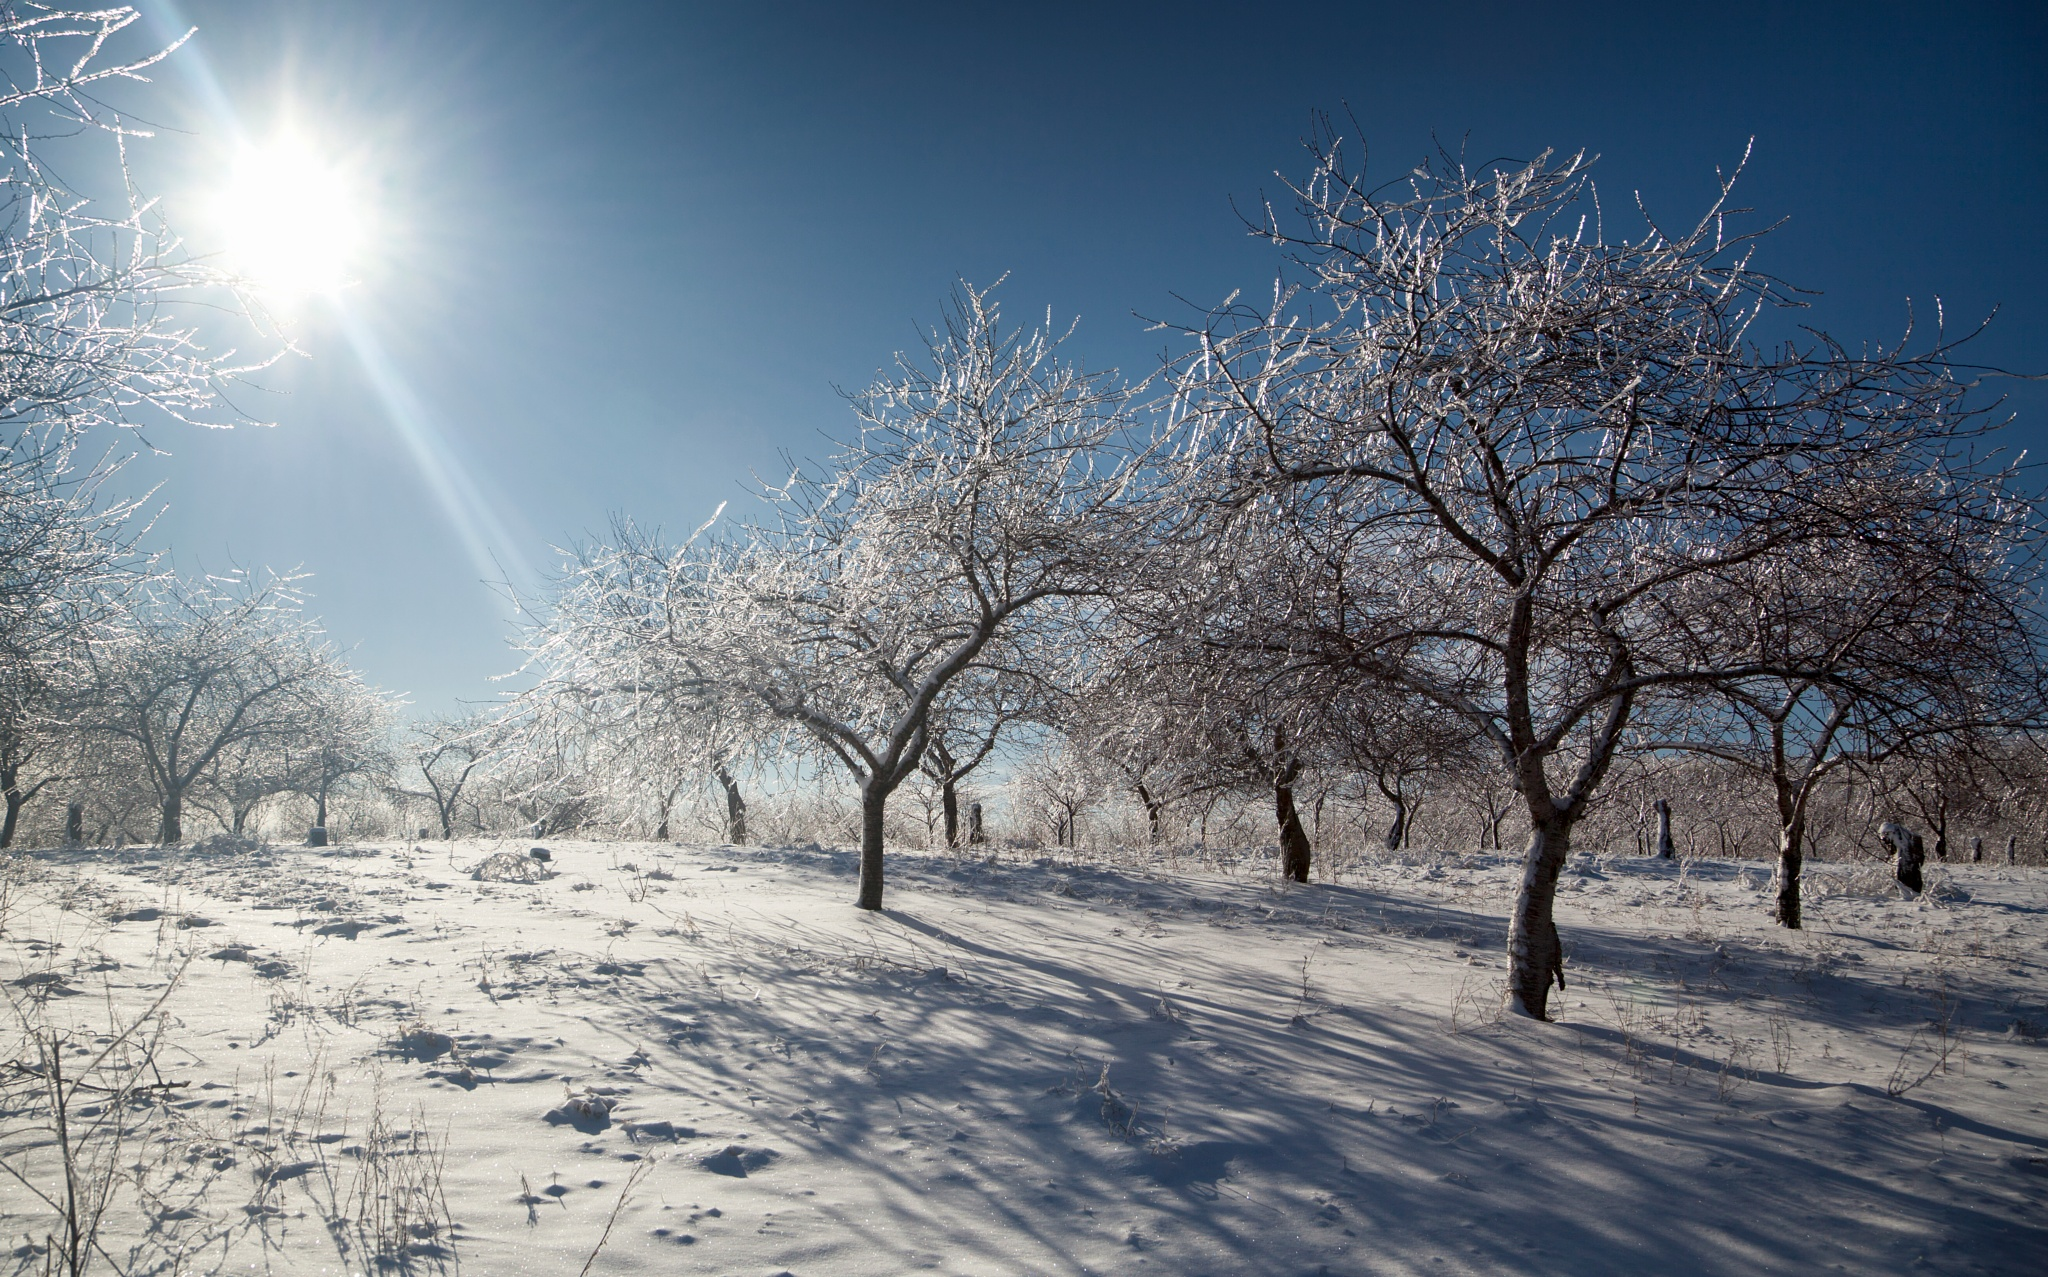 Sun Over an Icy Orchard by Kevin Kludy